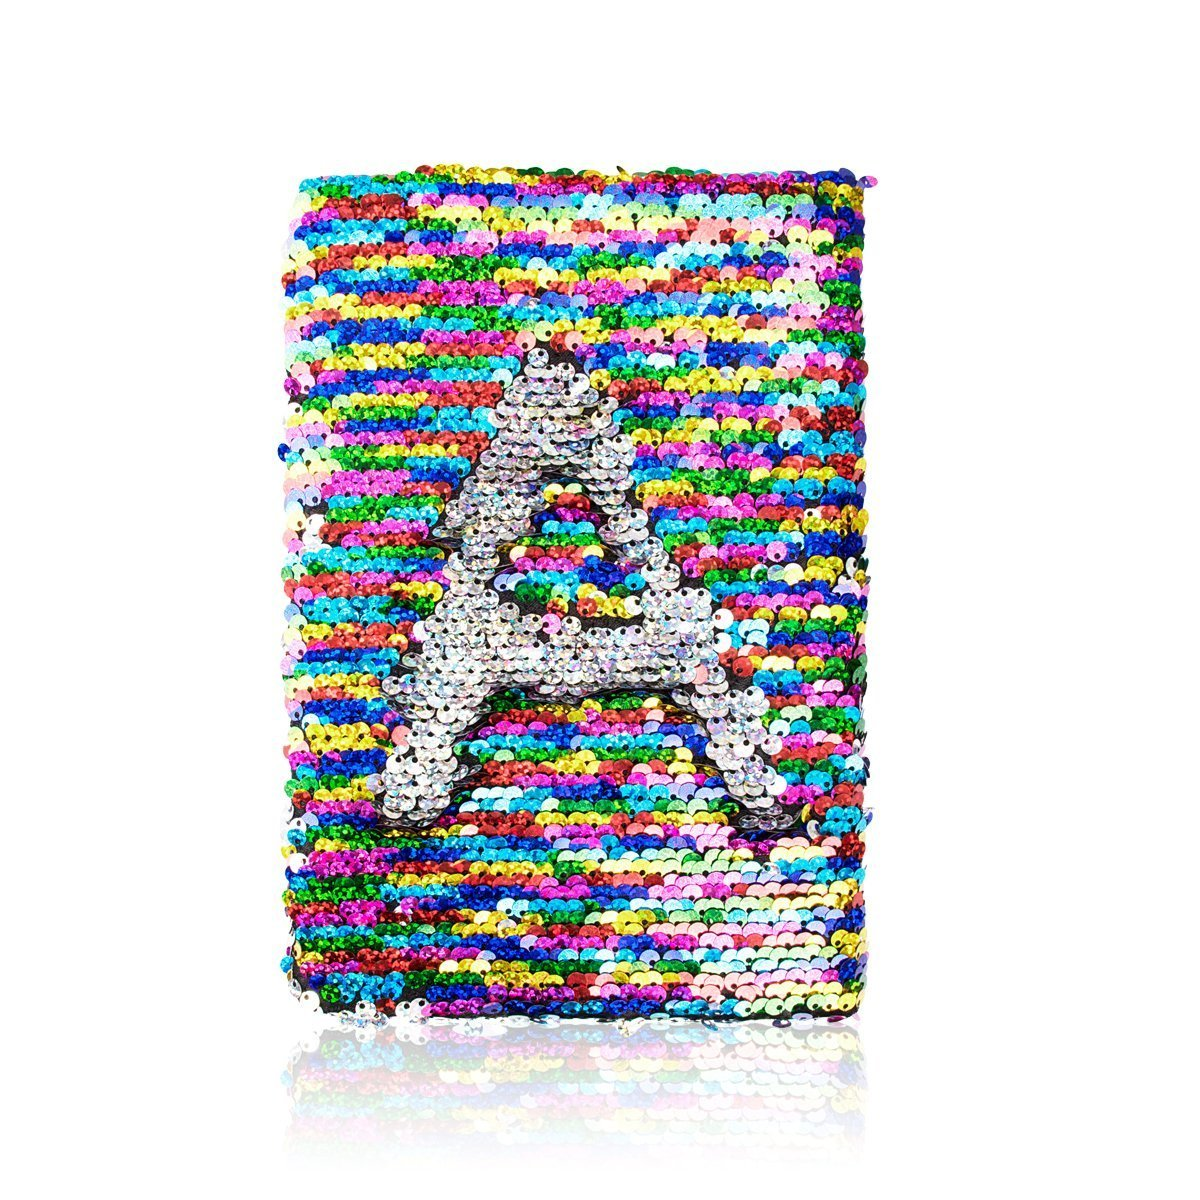 Aprince Reversible Sequin Notebook Bling Notebook for Kids Magic Sequin Diary